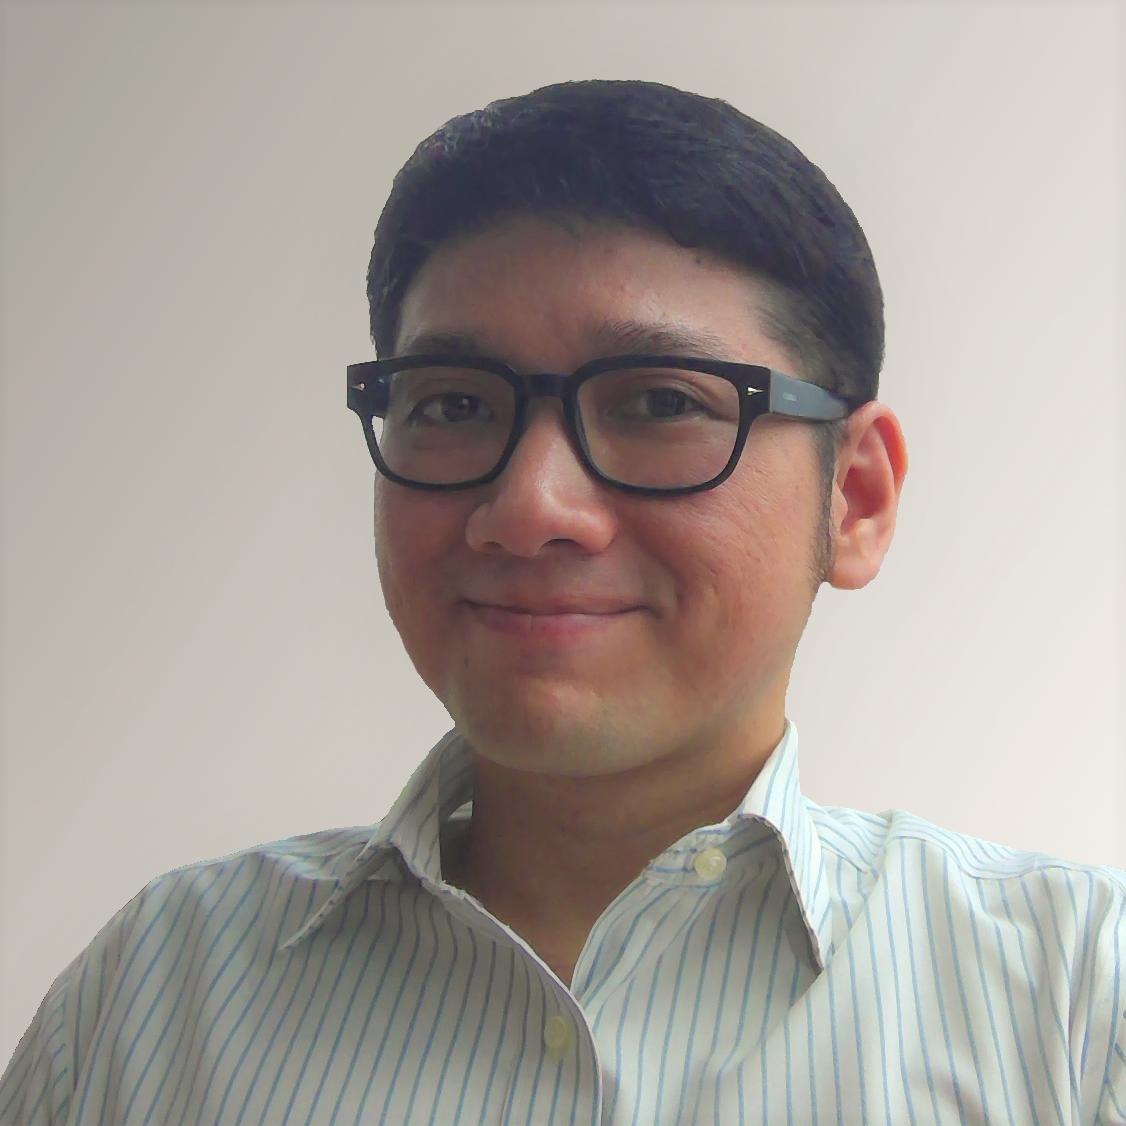 Partner - Mark Sasongko is responsible for investment sourcing and management. He was previously the Head of Planning in charge of development and logistics at Triputra Agro Persada. Mark received a BS in Electrical Engineering from Institut Teknologi Bandung and a MBA from Prasetiya Mulya Business School.